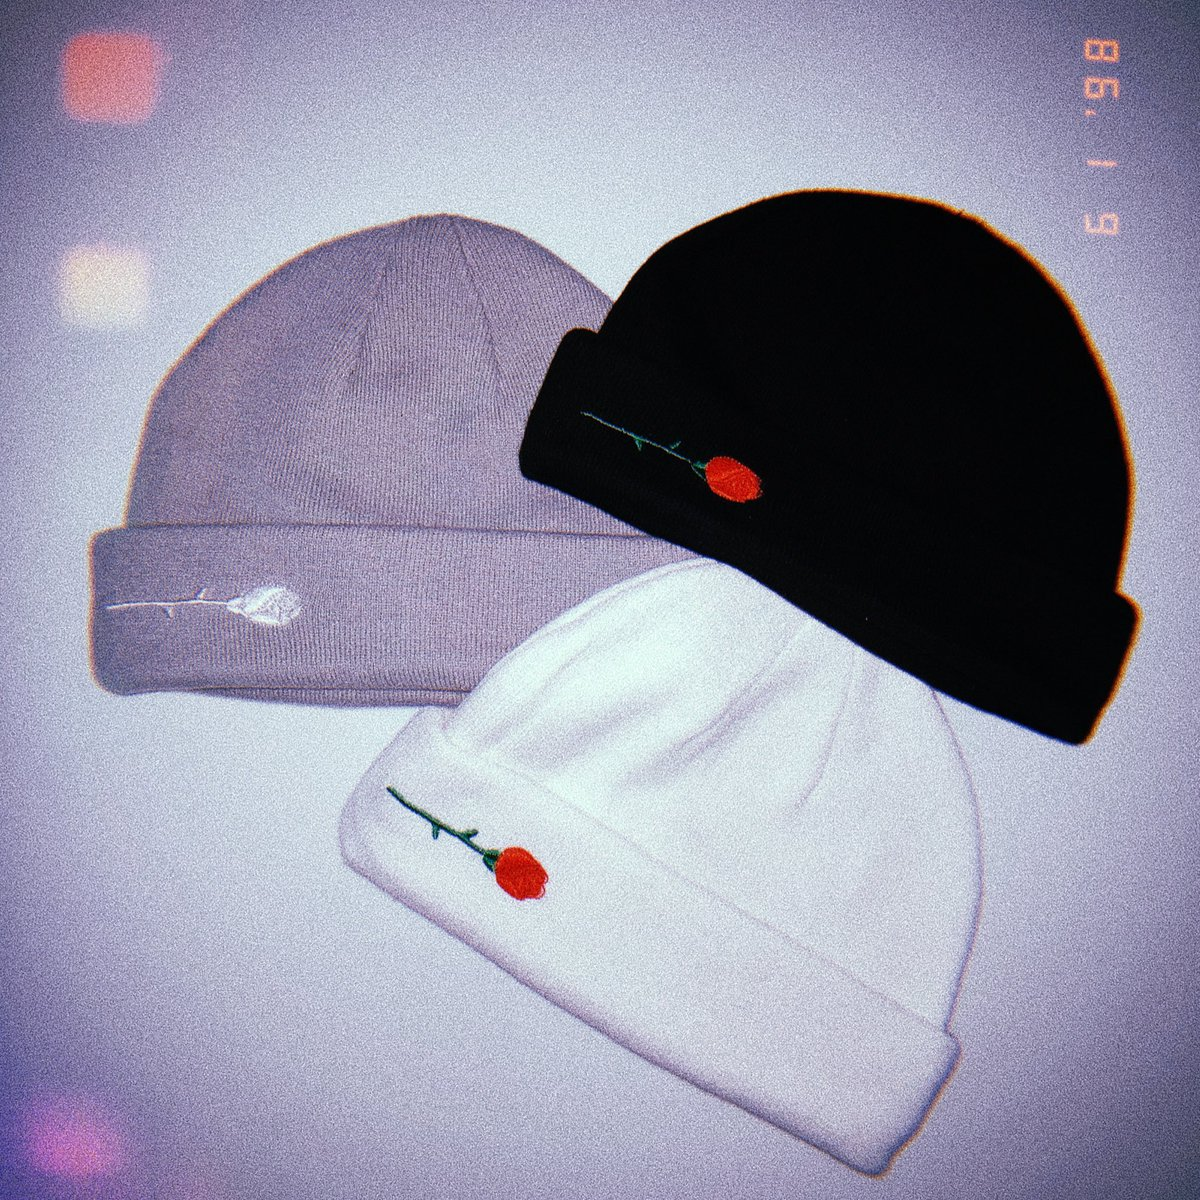 Who wants one? Coming soon 🥀 https://t.co/LIYvkUTlJM